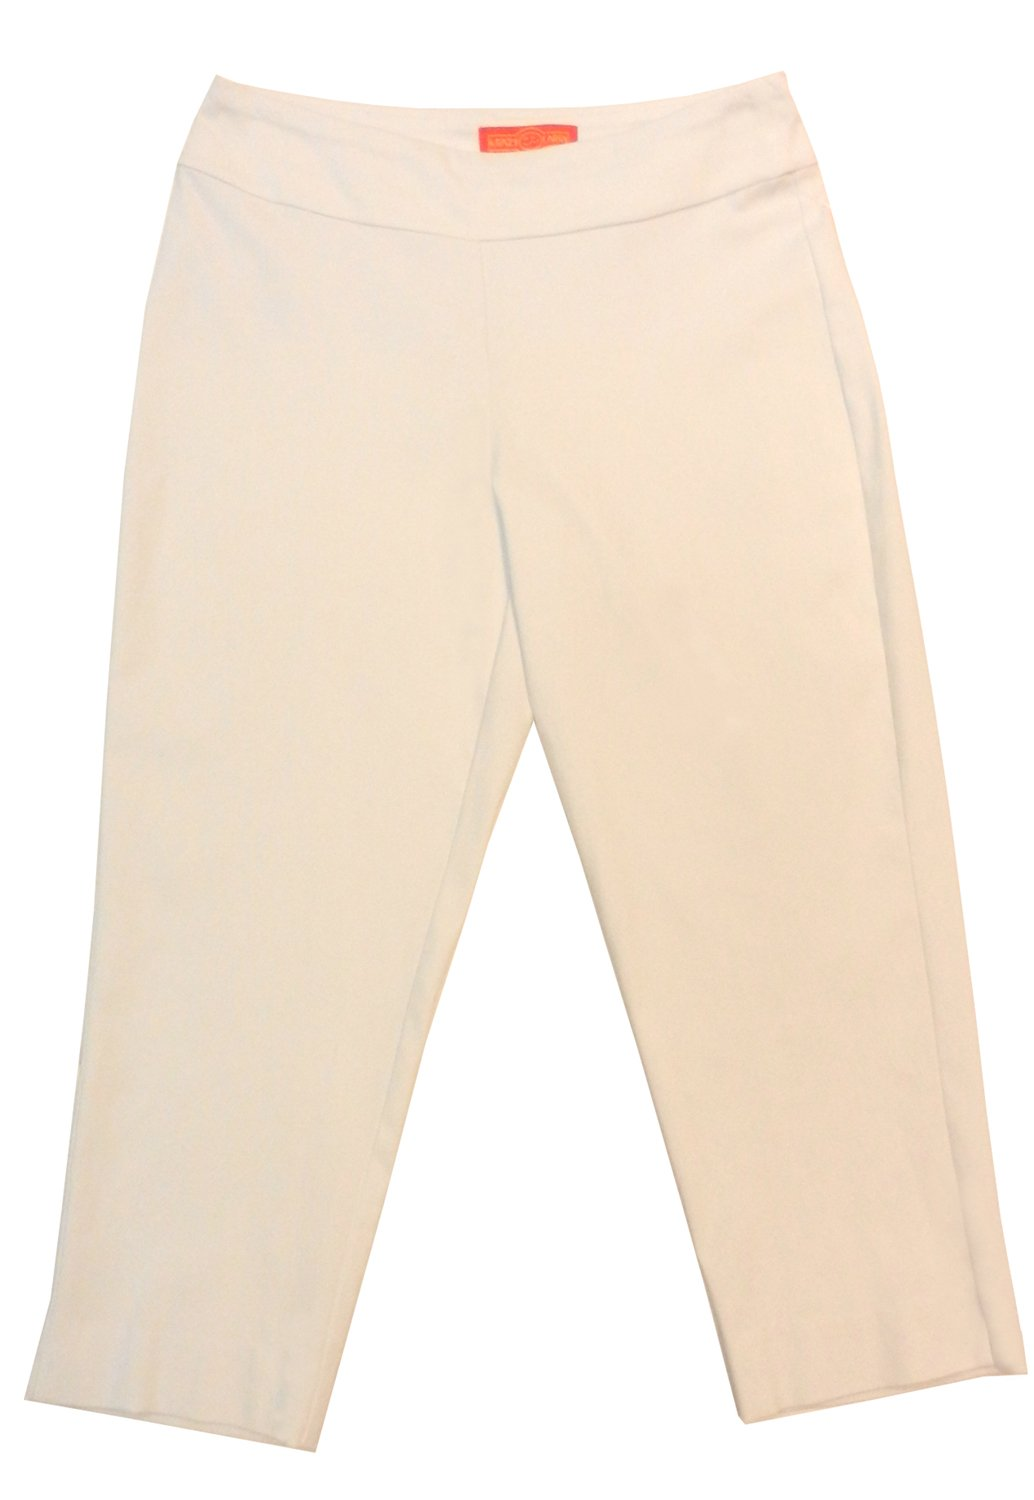 Krazy Larry Pull-on Cropped Pants (12, White)